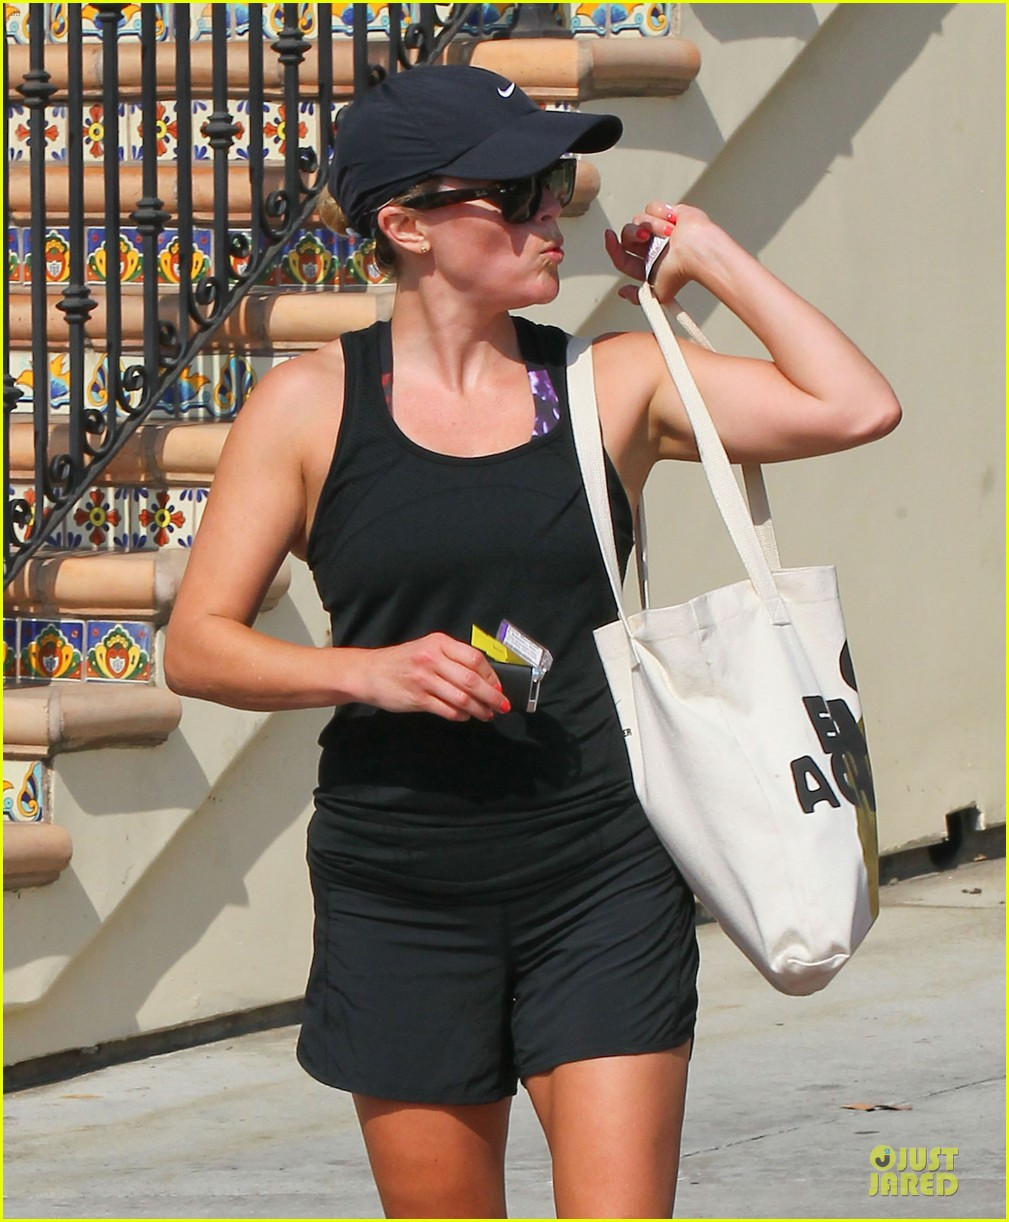 reese witherspoon wild star producer 092912887